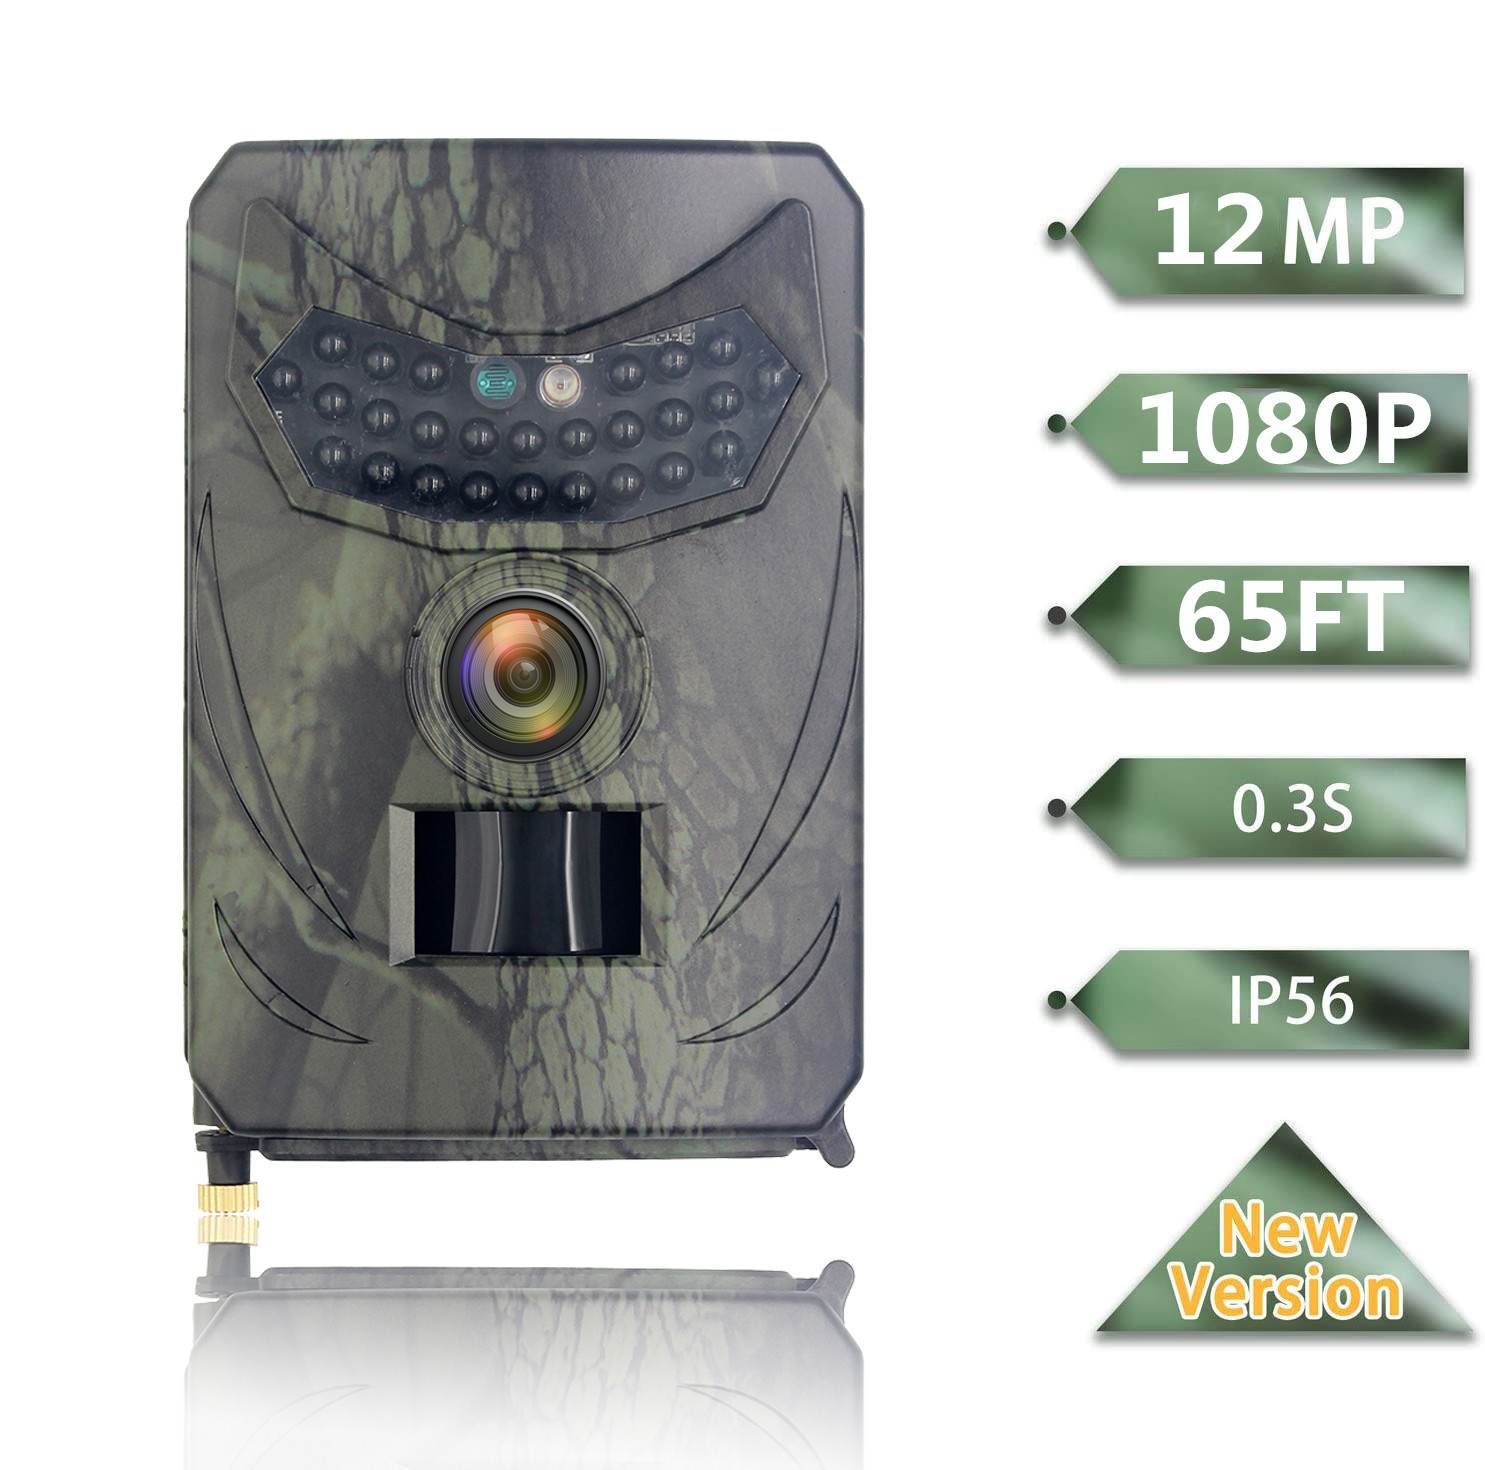 Outdoor 12MP 1080P Waterproof Hunting Camera Home Safety Farmwork Wildlife Night Vision Trail Photo Video Trap Scouting Game